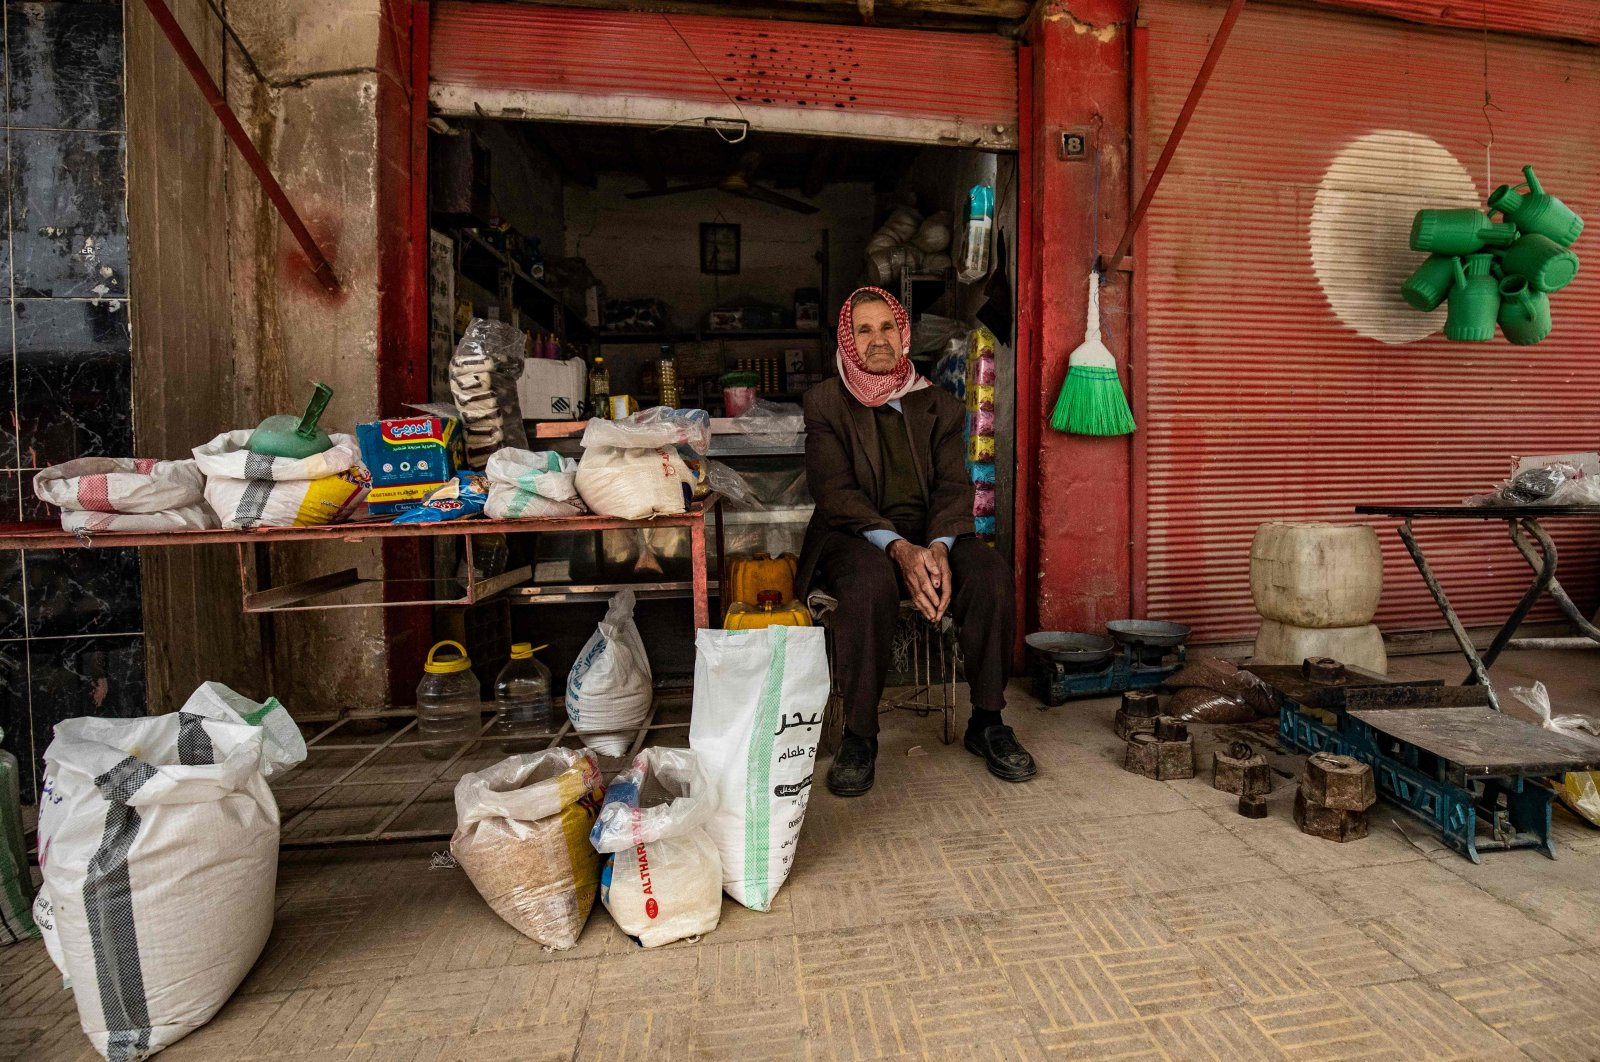 A Syrian man sits outside his store in the city of Qamishli in Syria's northeastern Hasakeh province, April 24, 2020. (AFP)